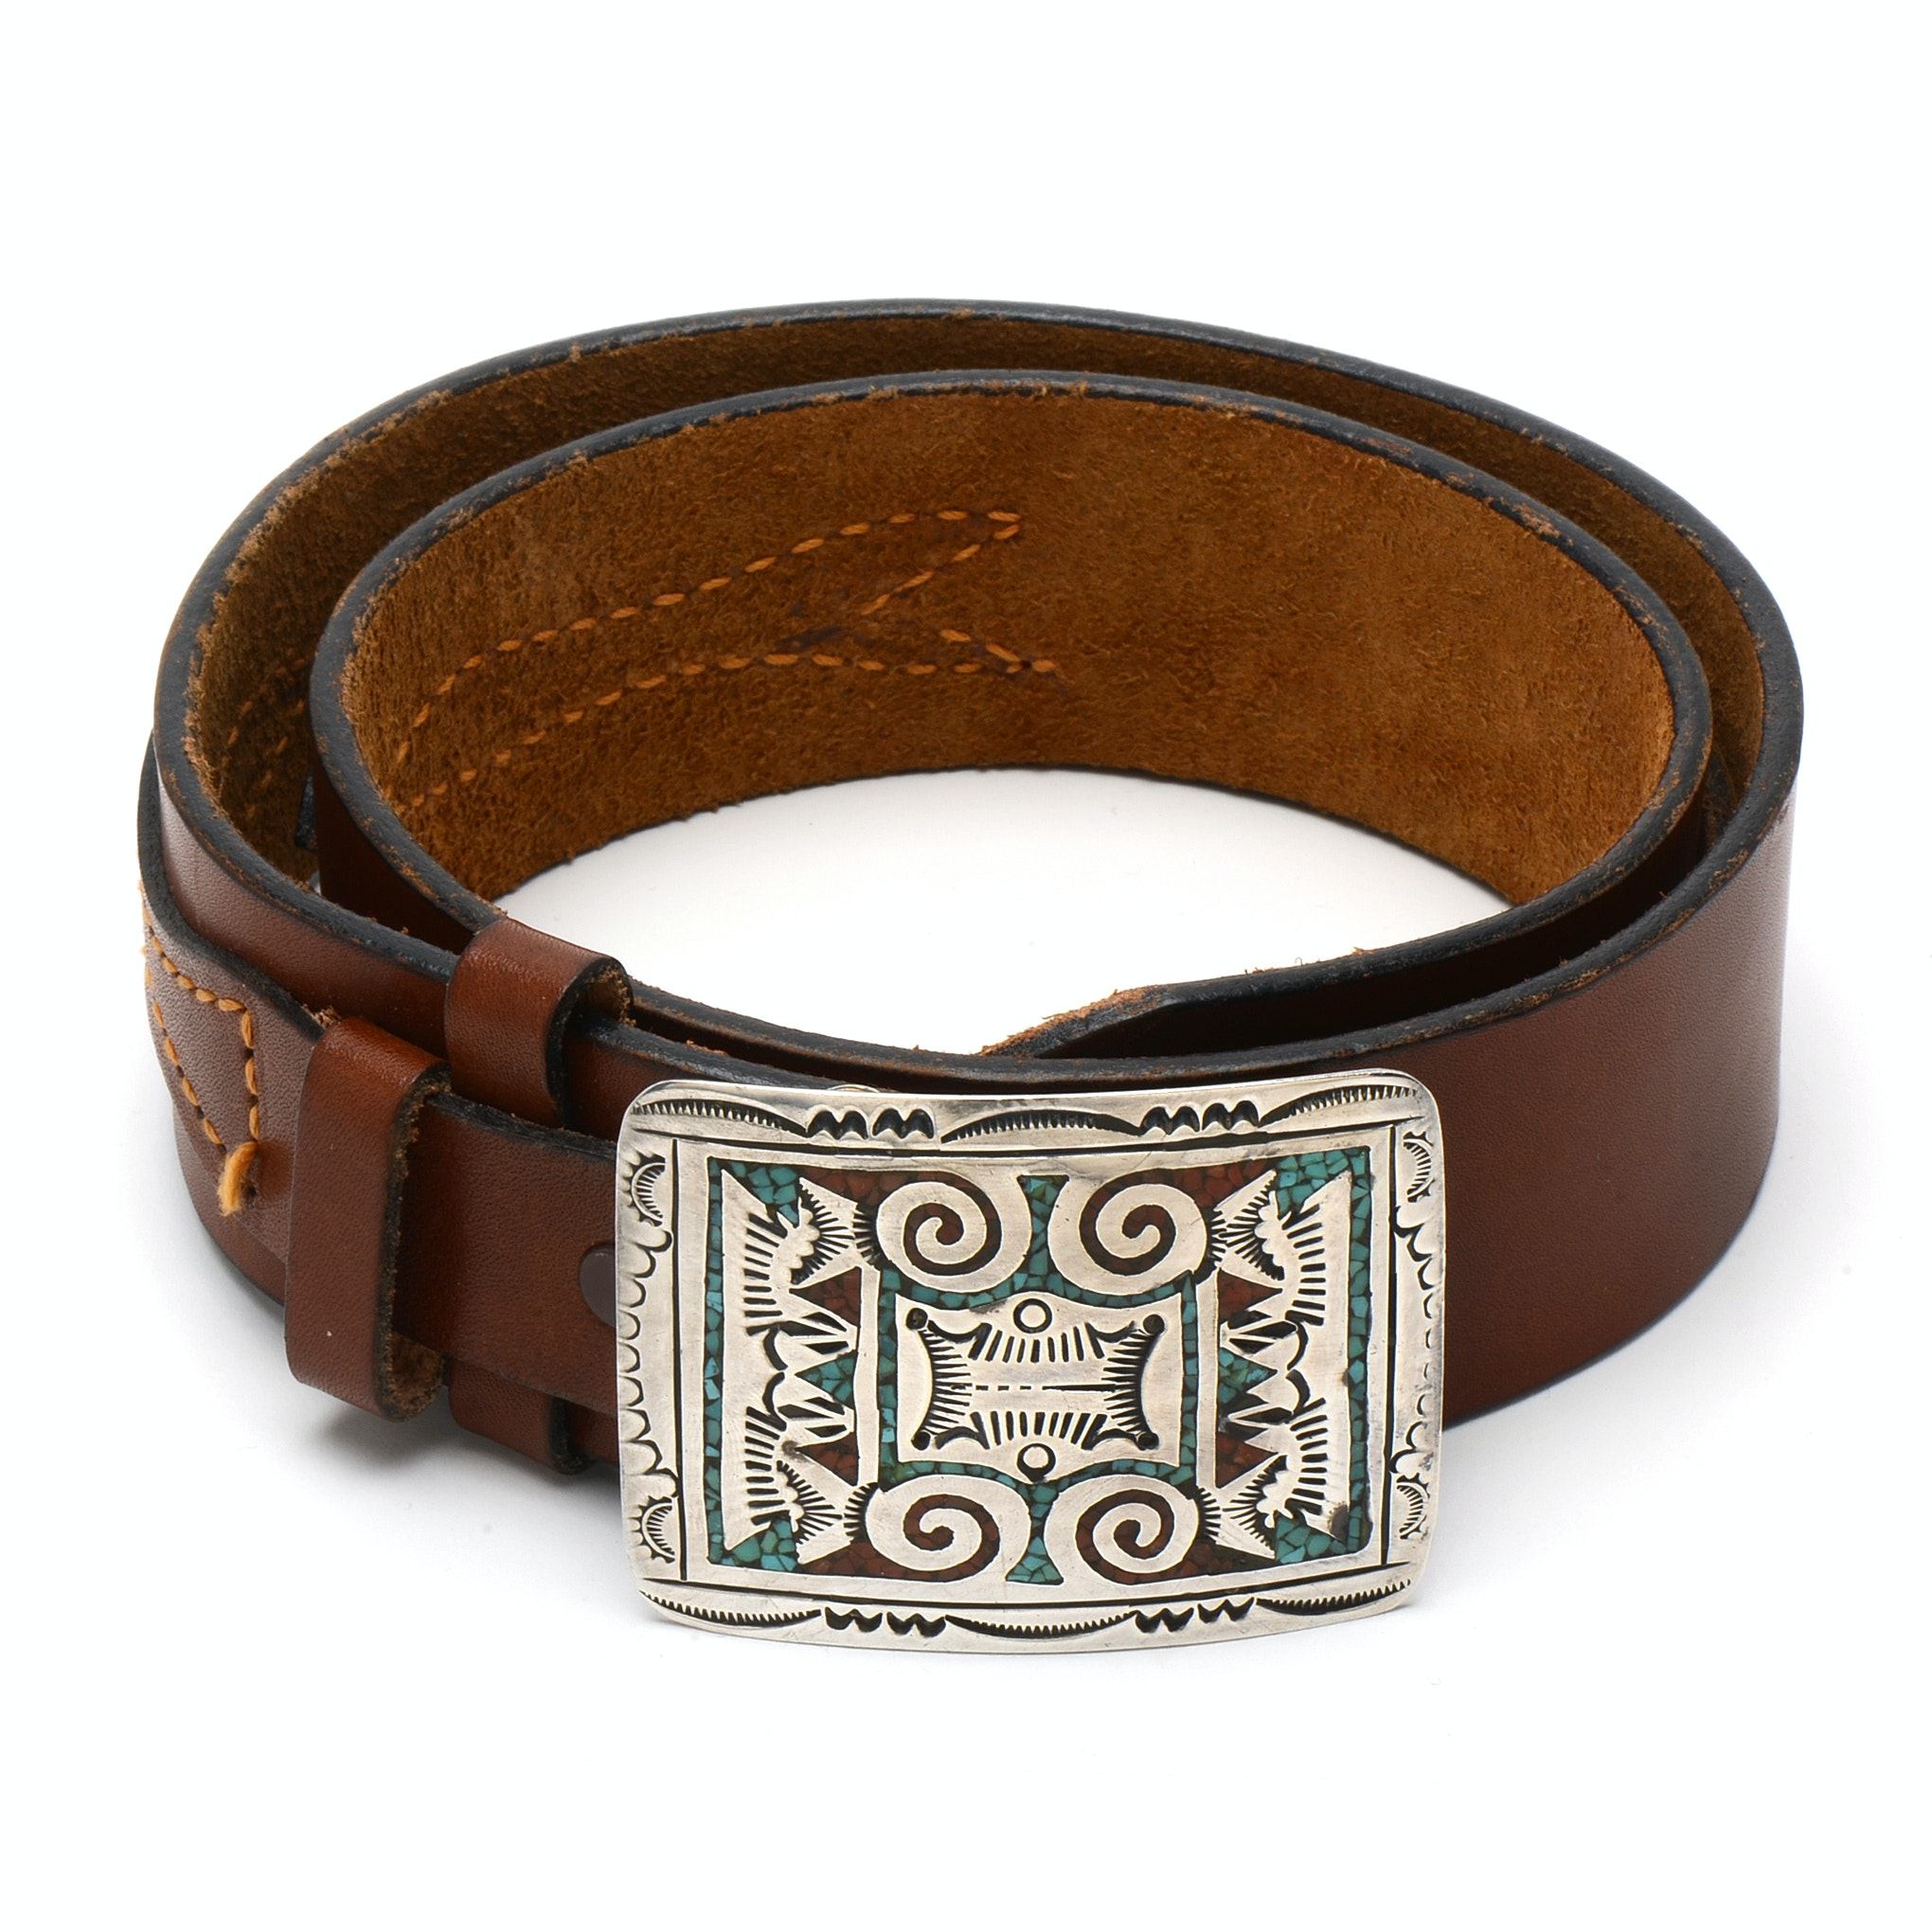 Southwest 800 Silver Dyed Chip Cowhide Leather Belt